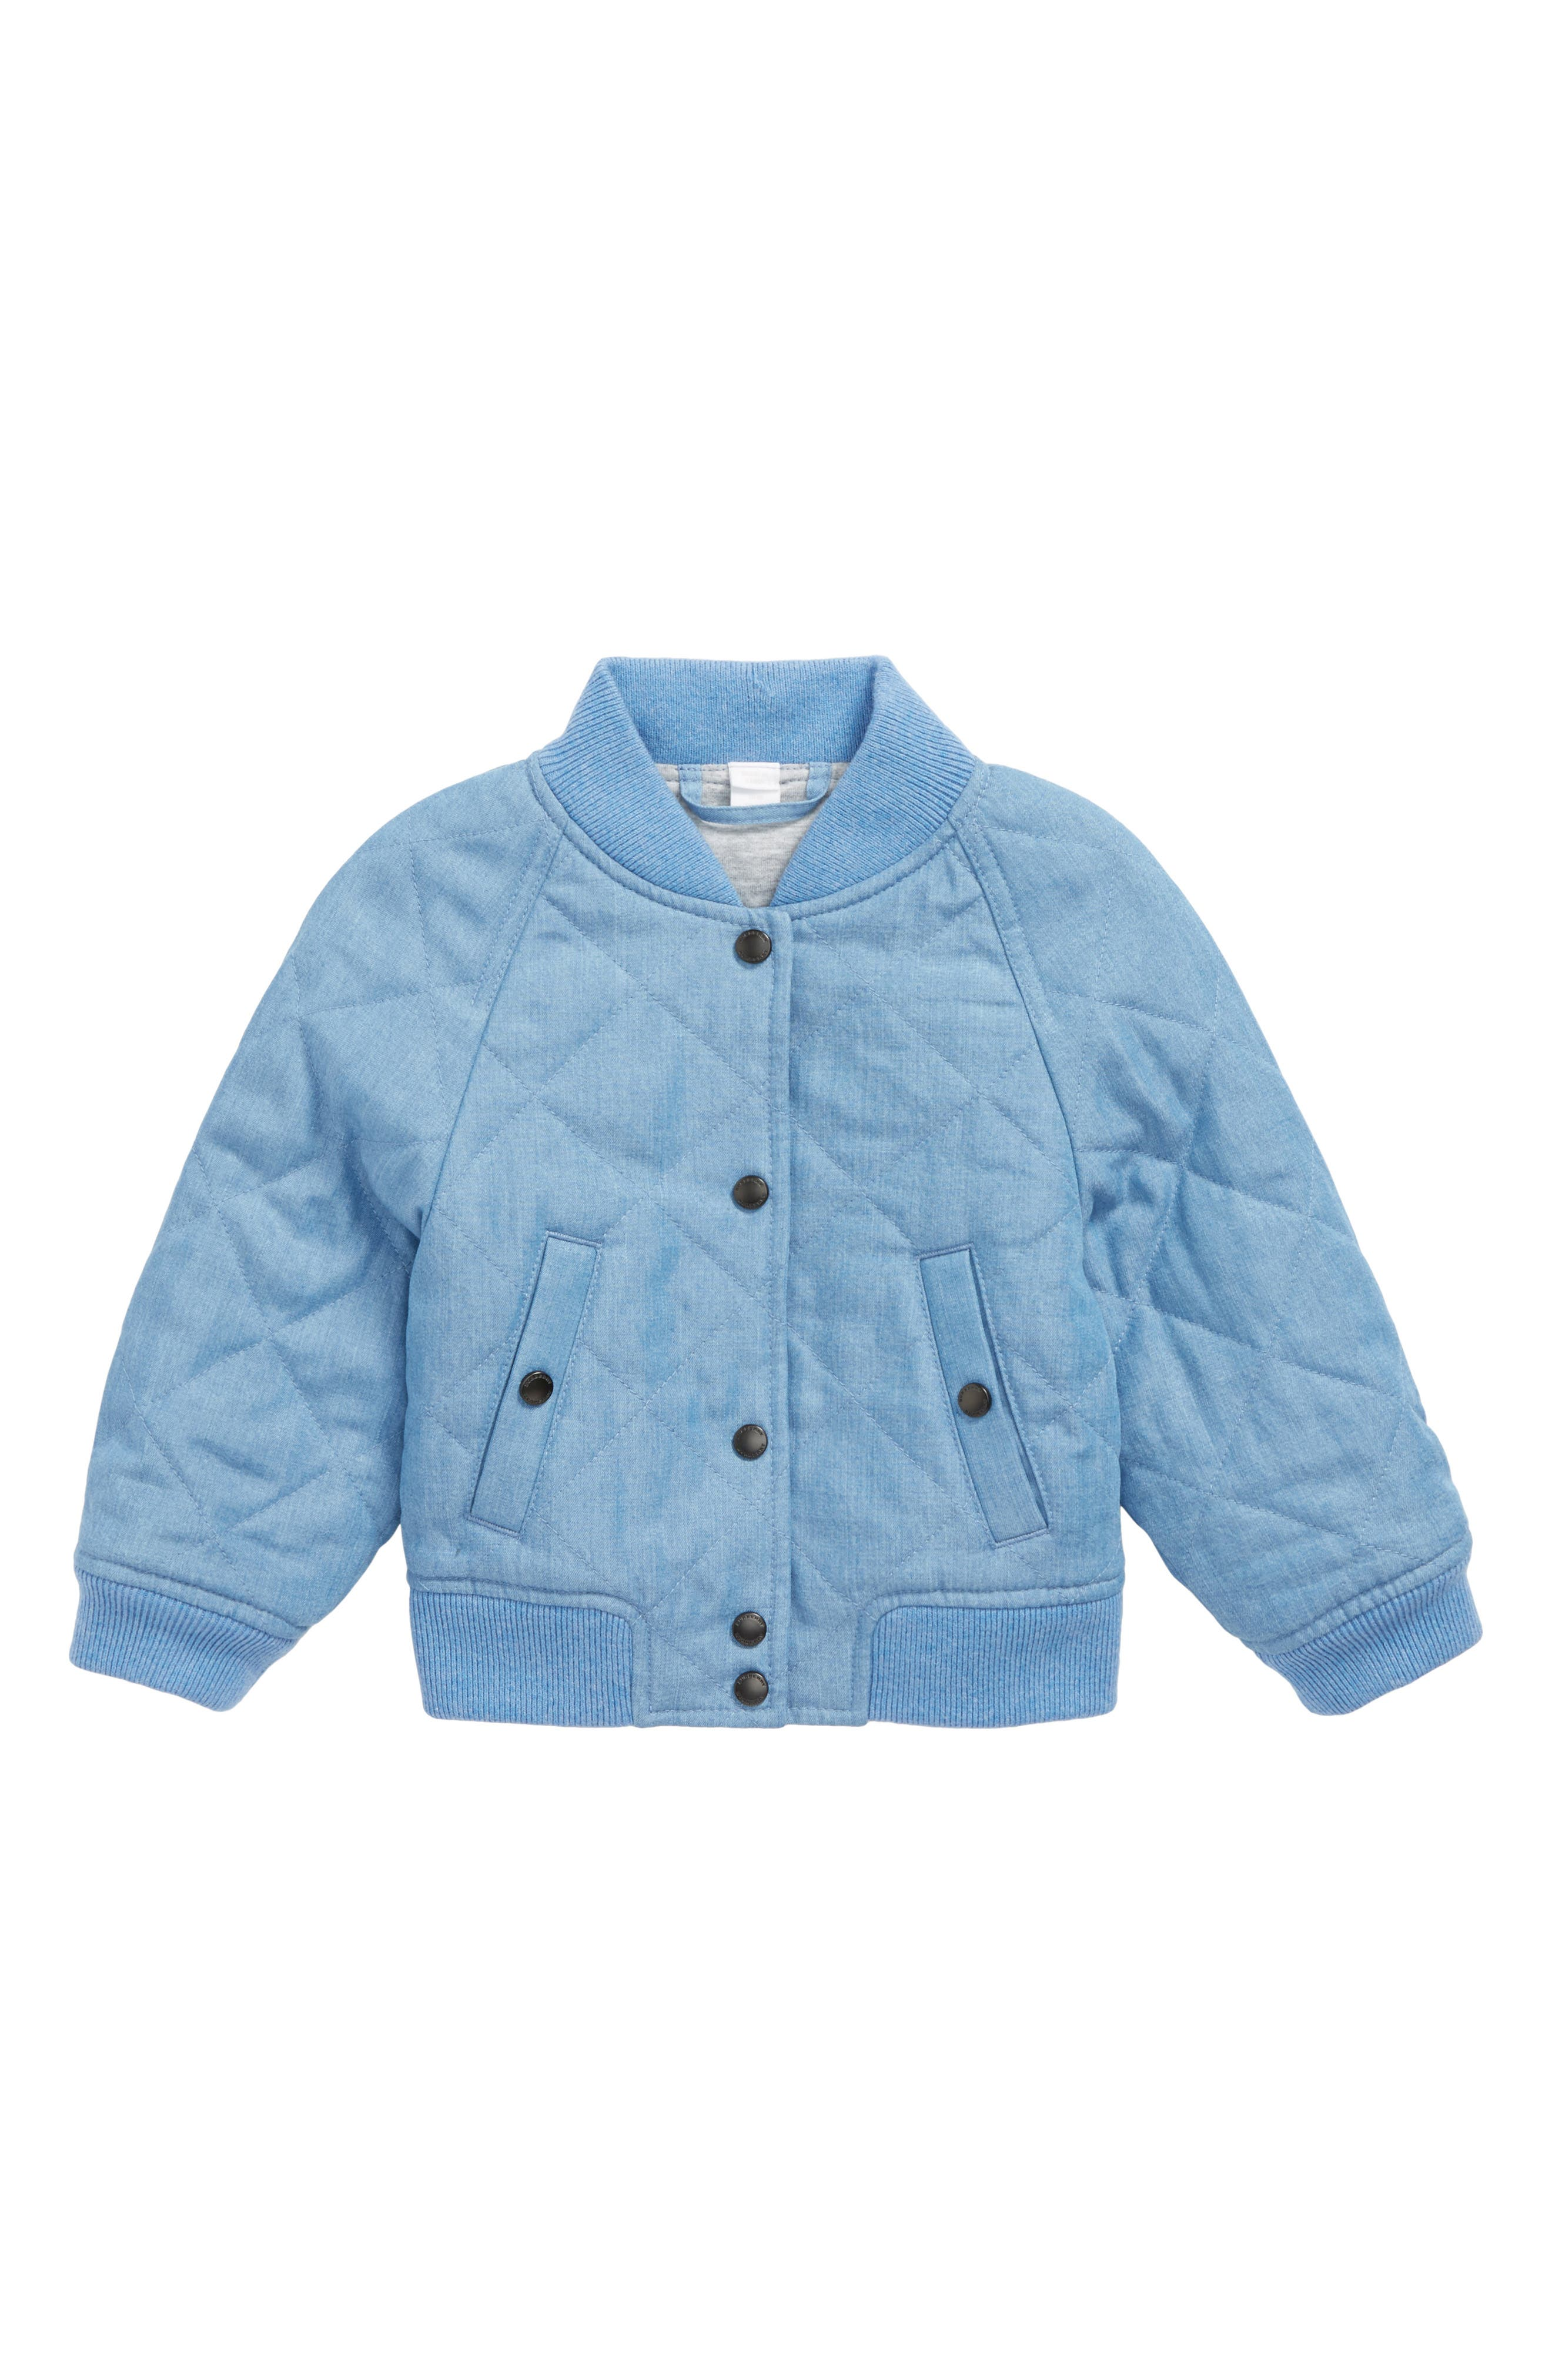 Joelle Denim Quilted Bomber Jacket,                             Main thumbnail 1, color,                             Steel Blue